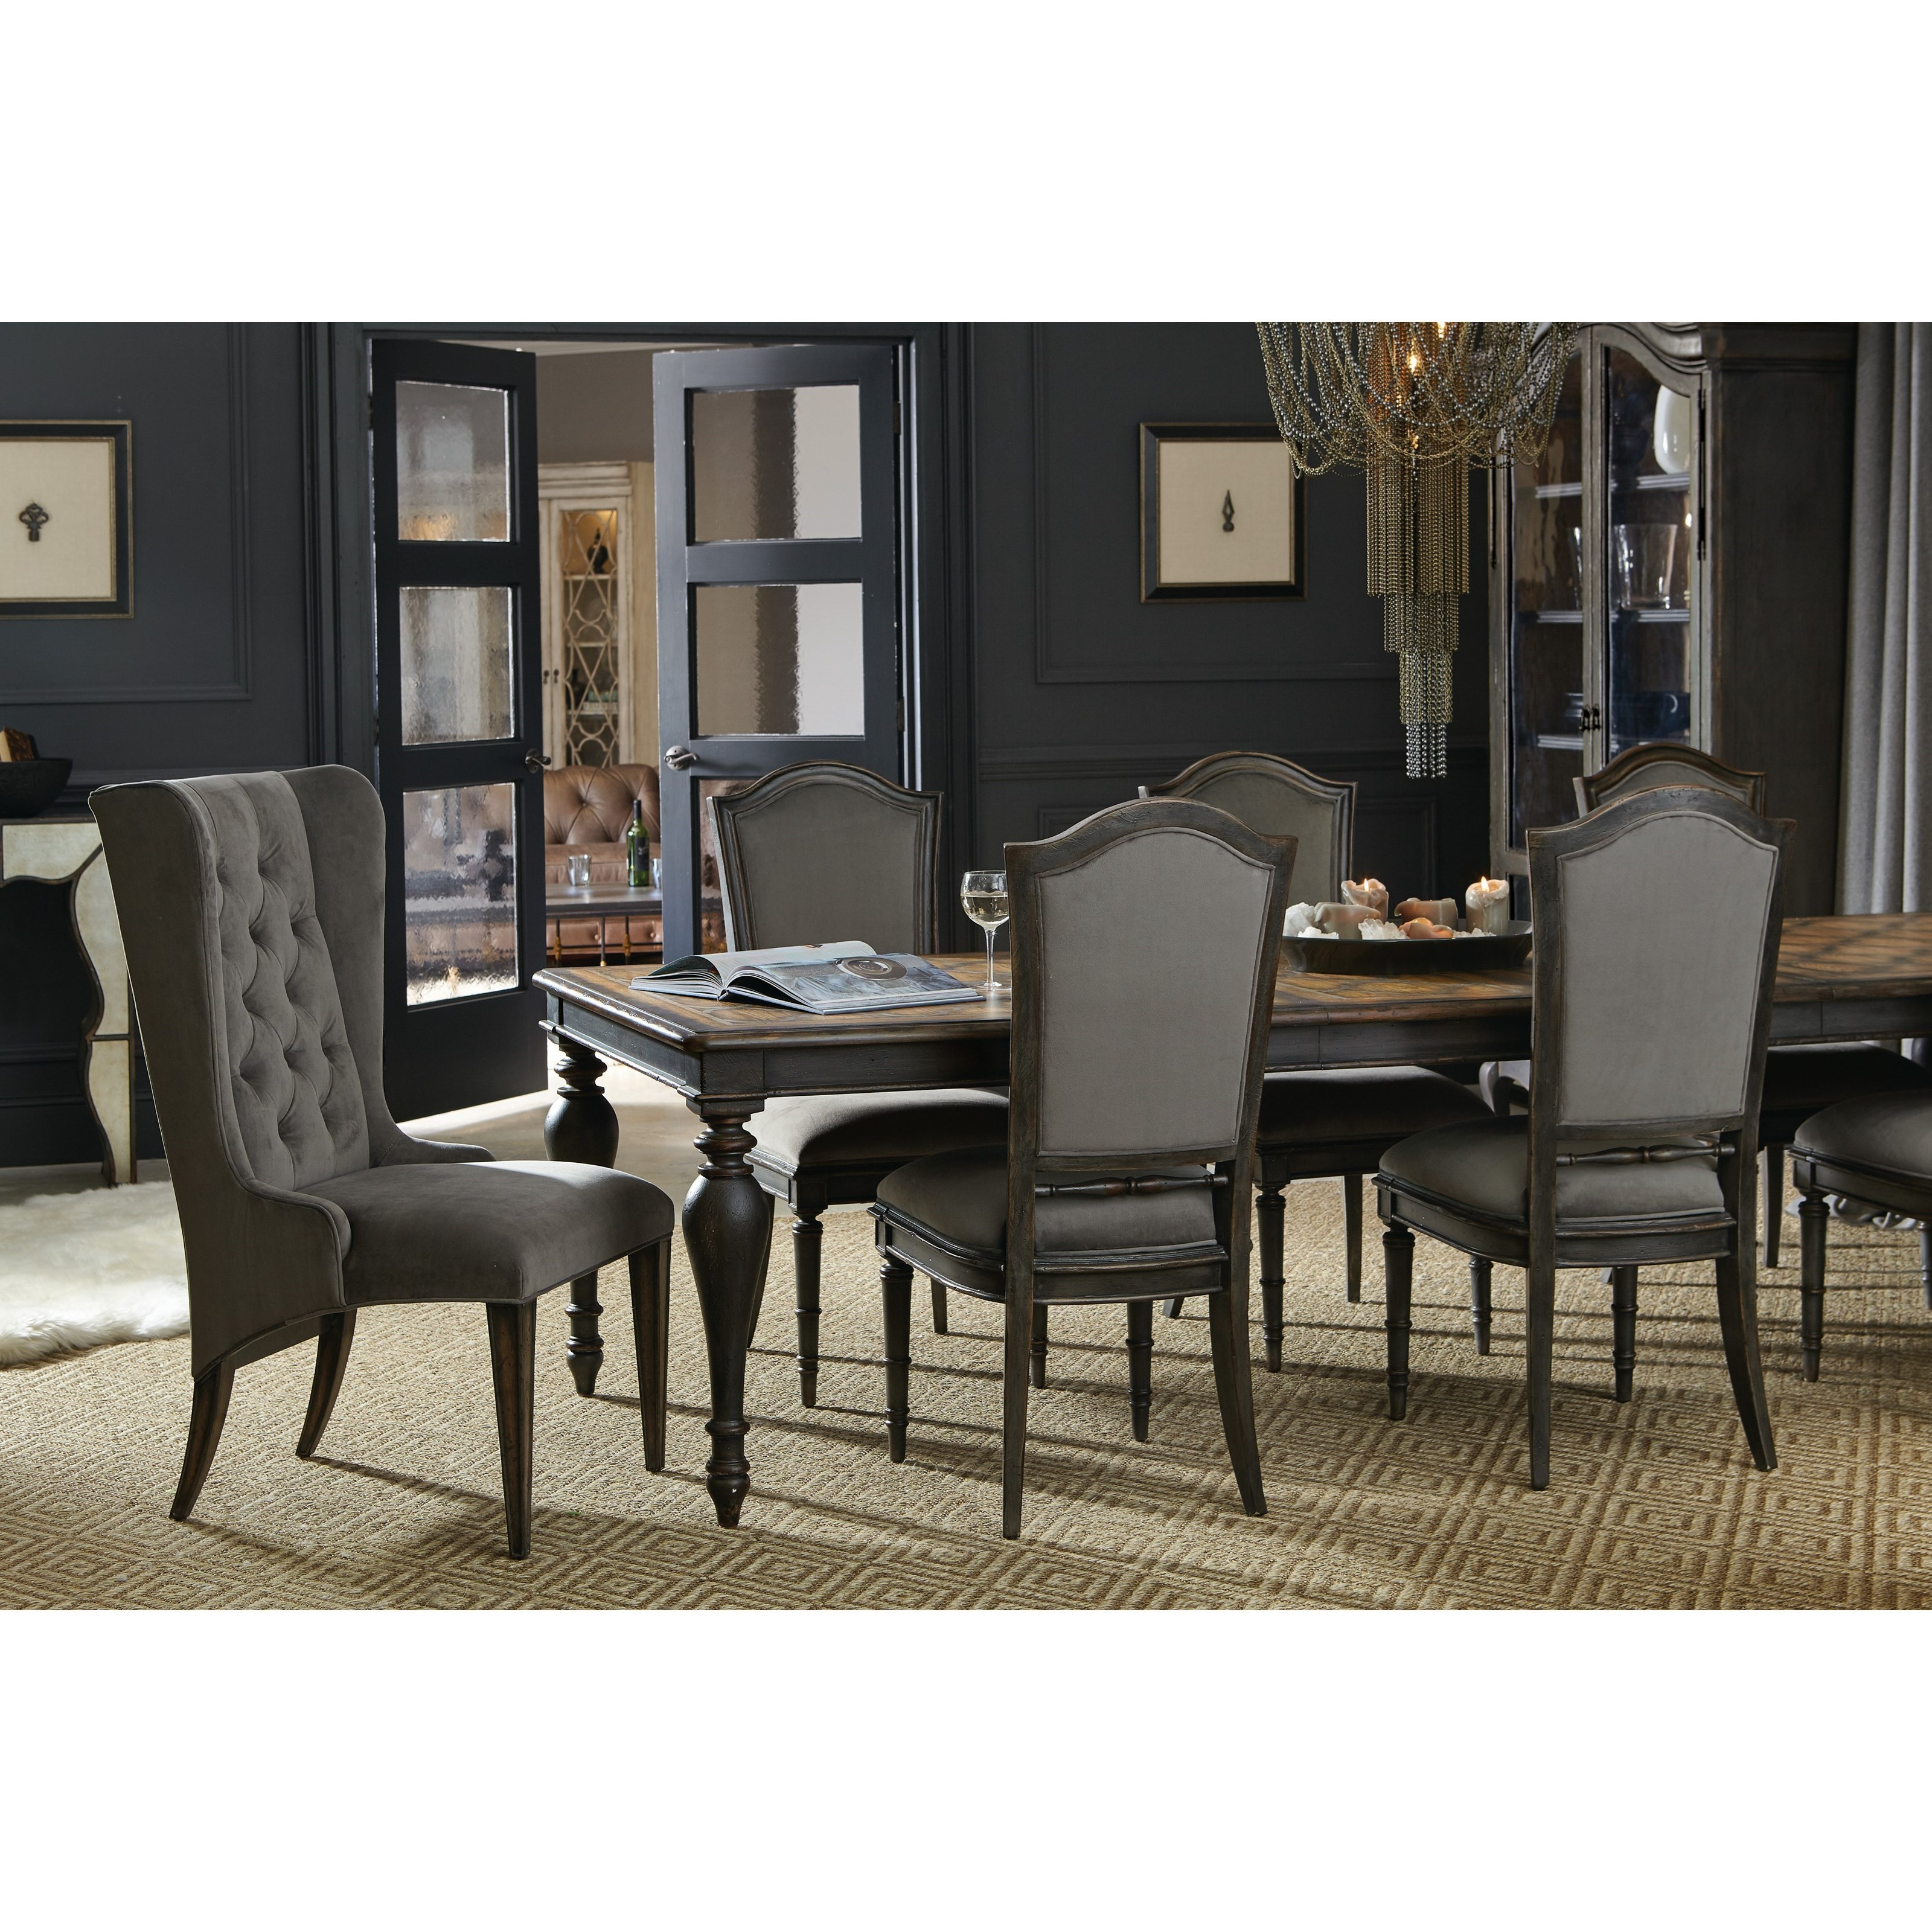 ethan allen dining table pads. looking for a protective table pad learn more u003e ethan allen dining pads